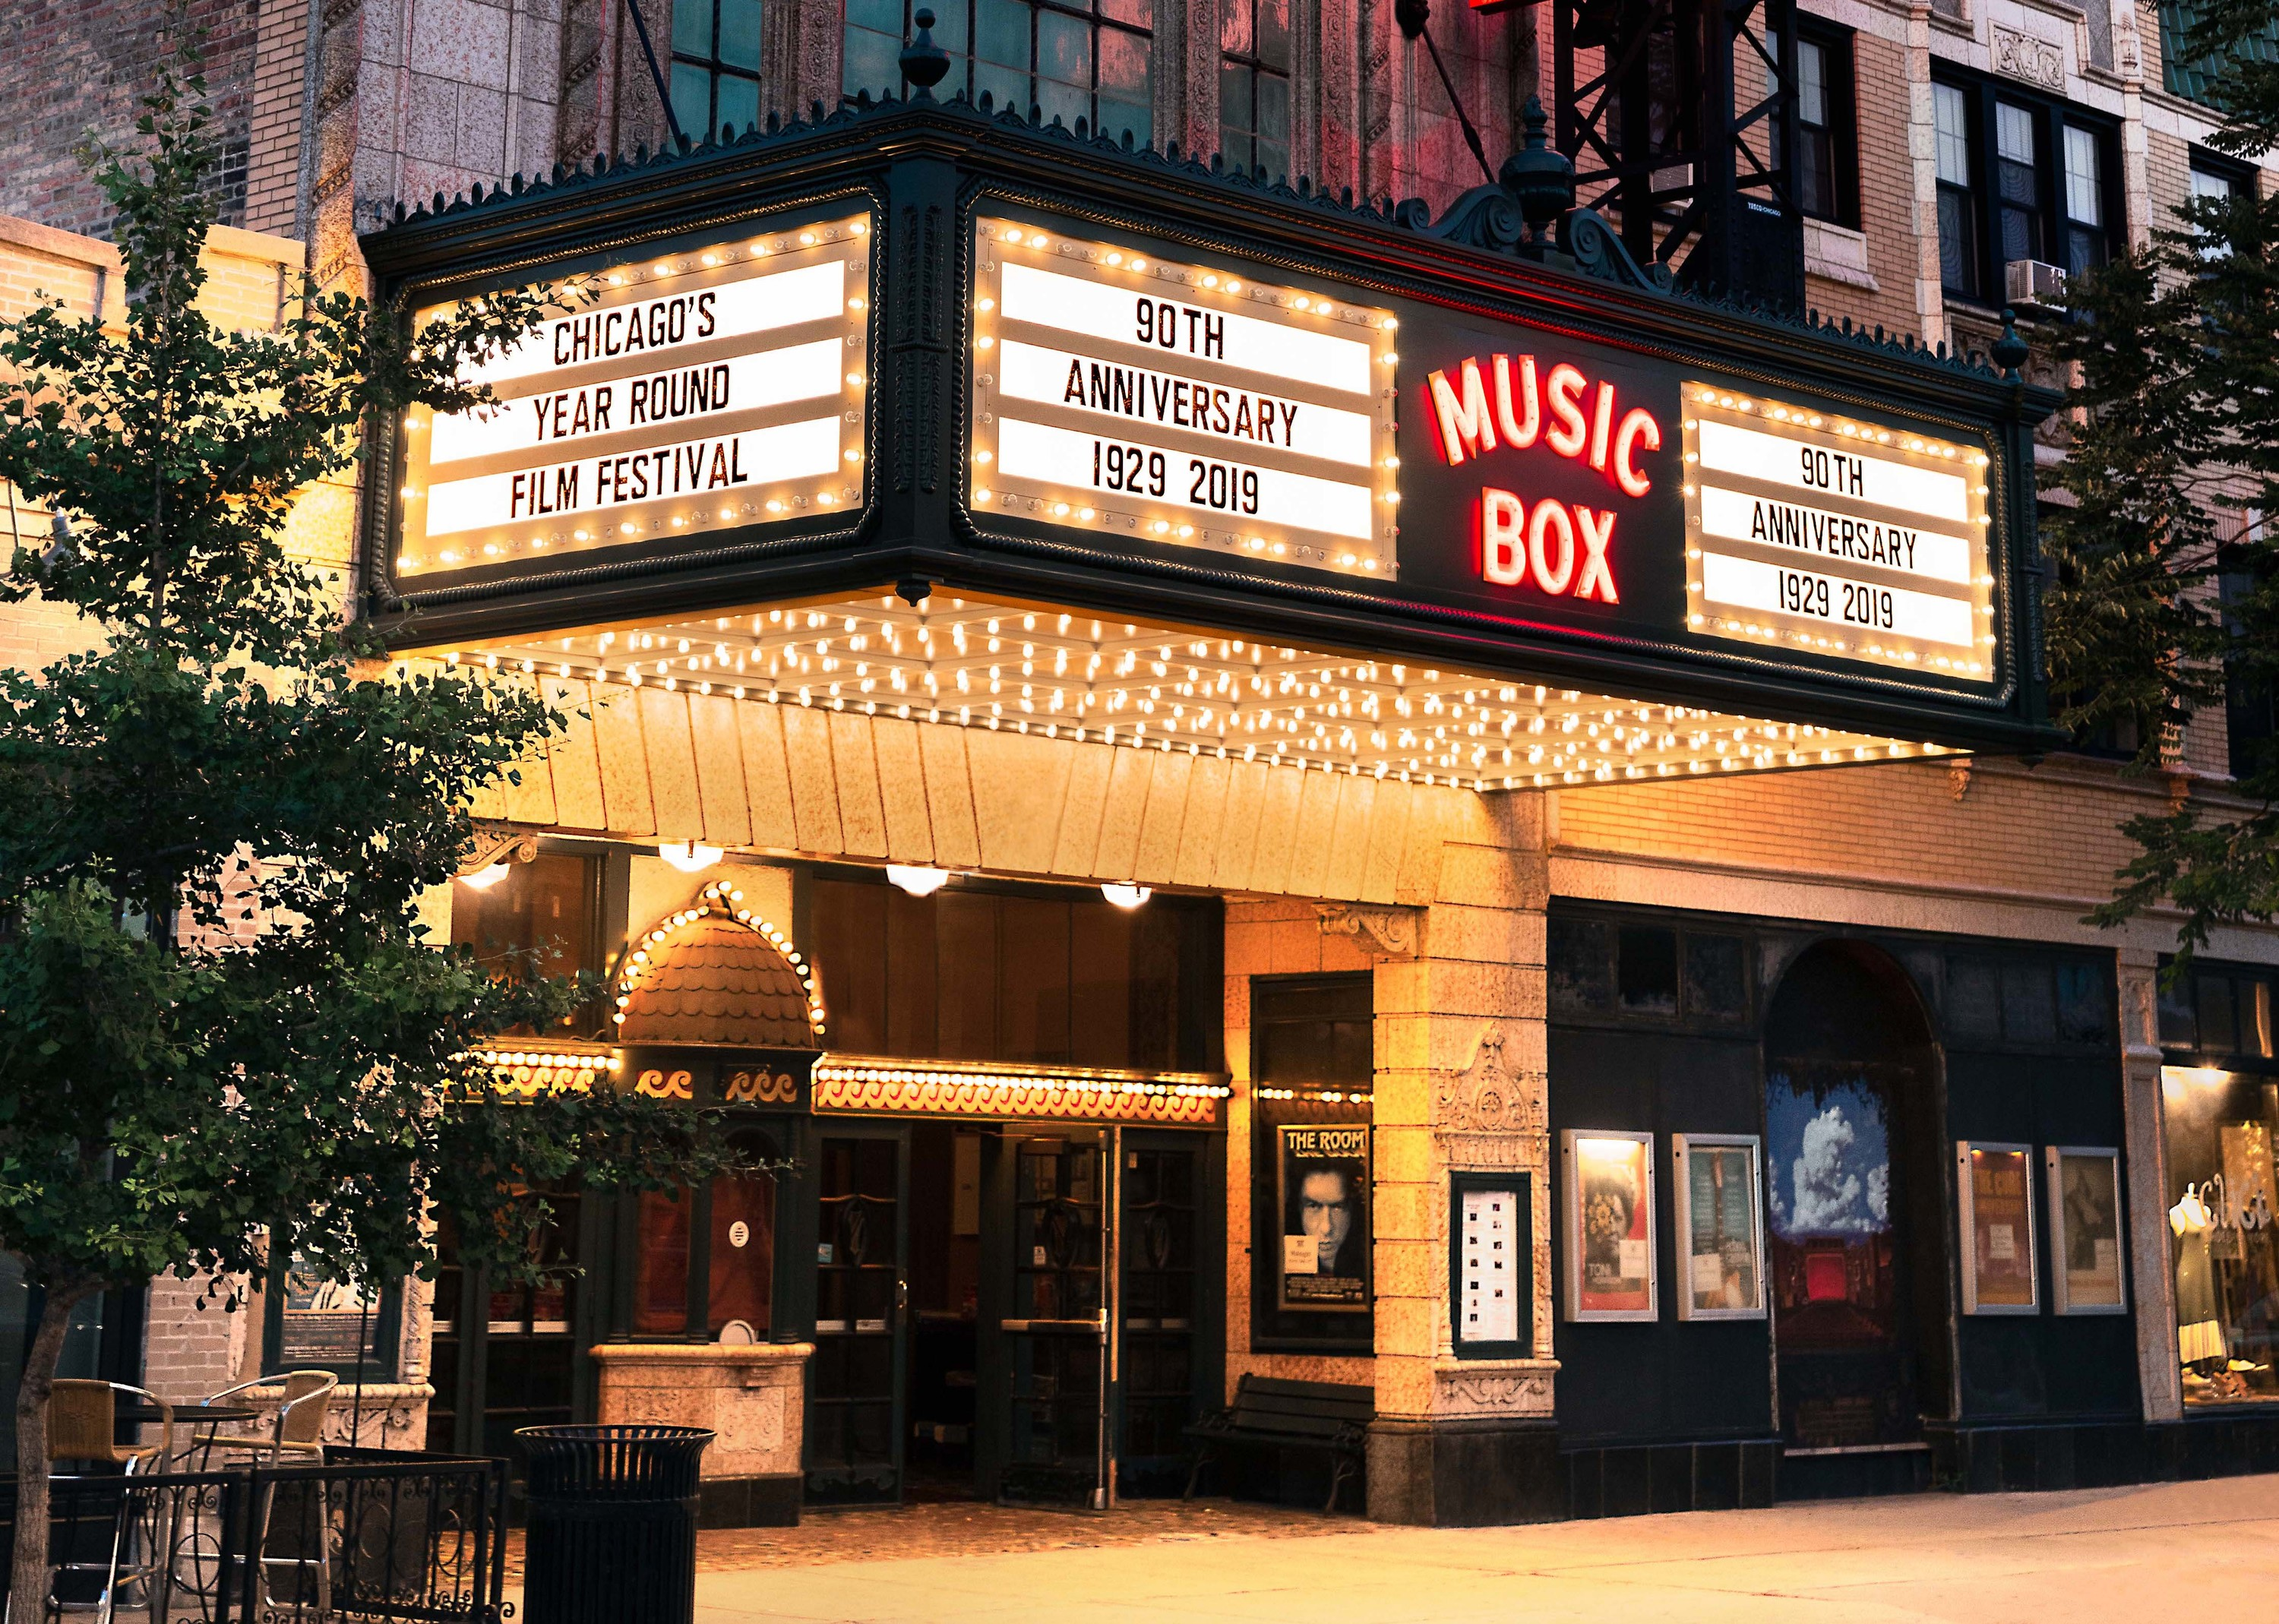 Support the Music Box Theatre by streaming an art-house film at home